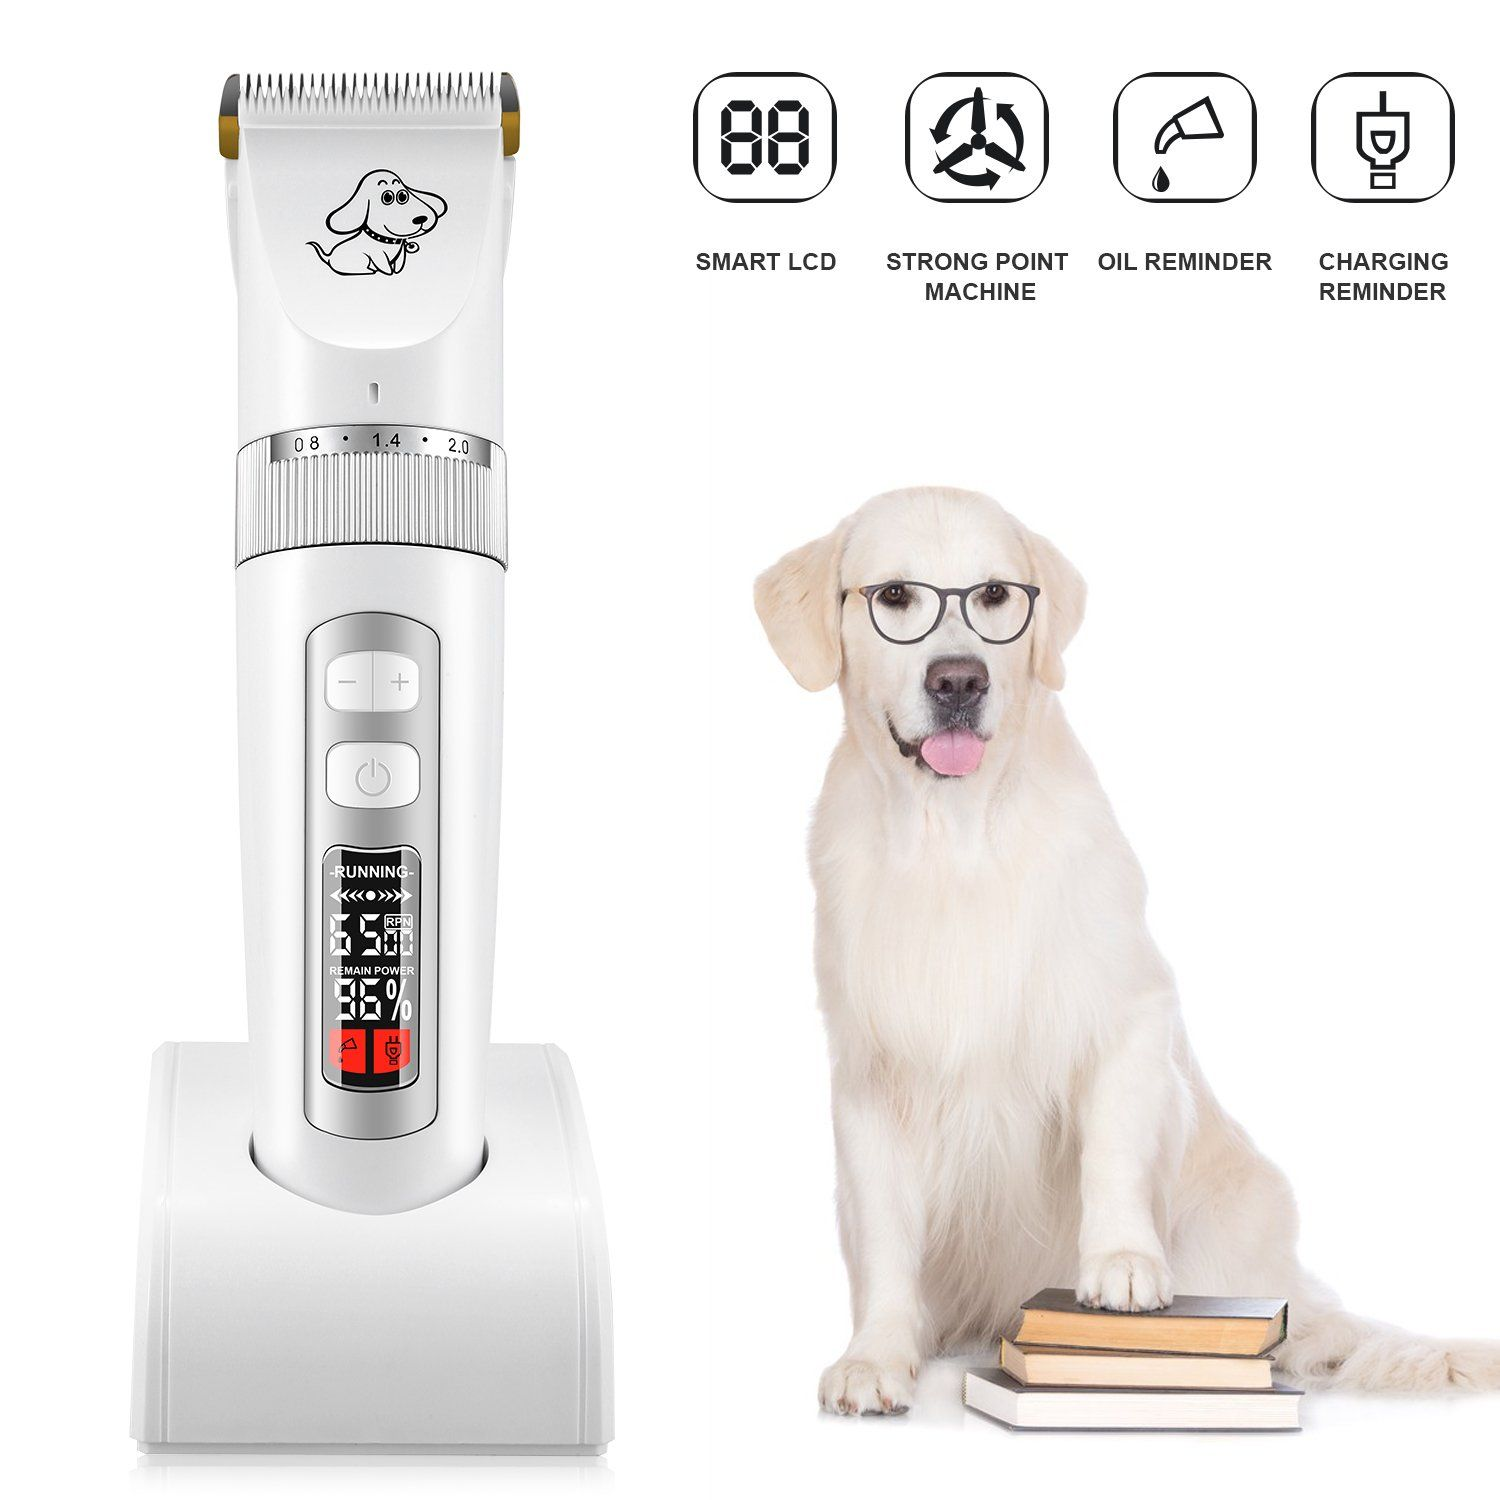 Afbest Dog Grooming Clippers Low Noise Rechargeable Cordless Dog